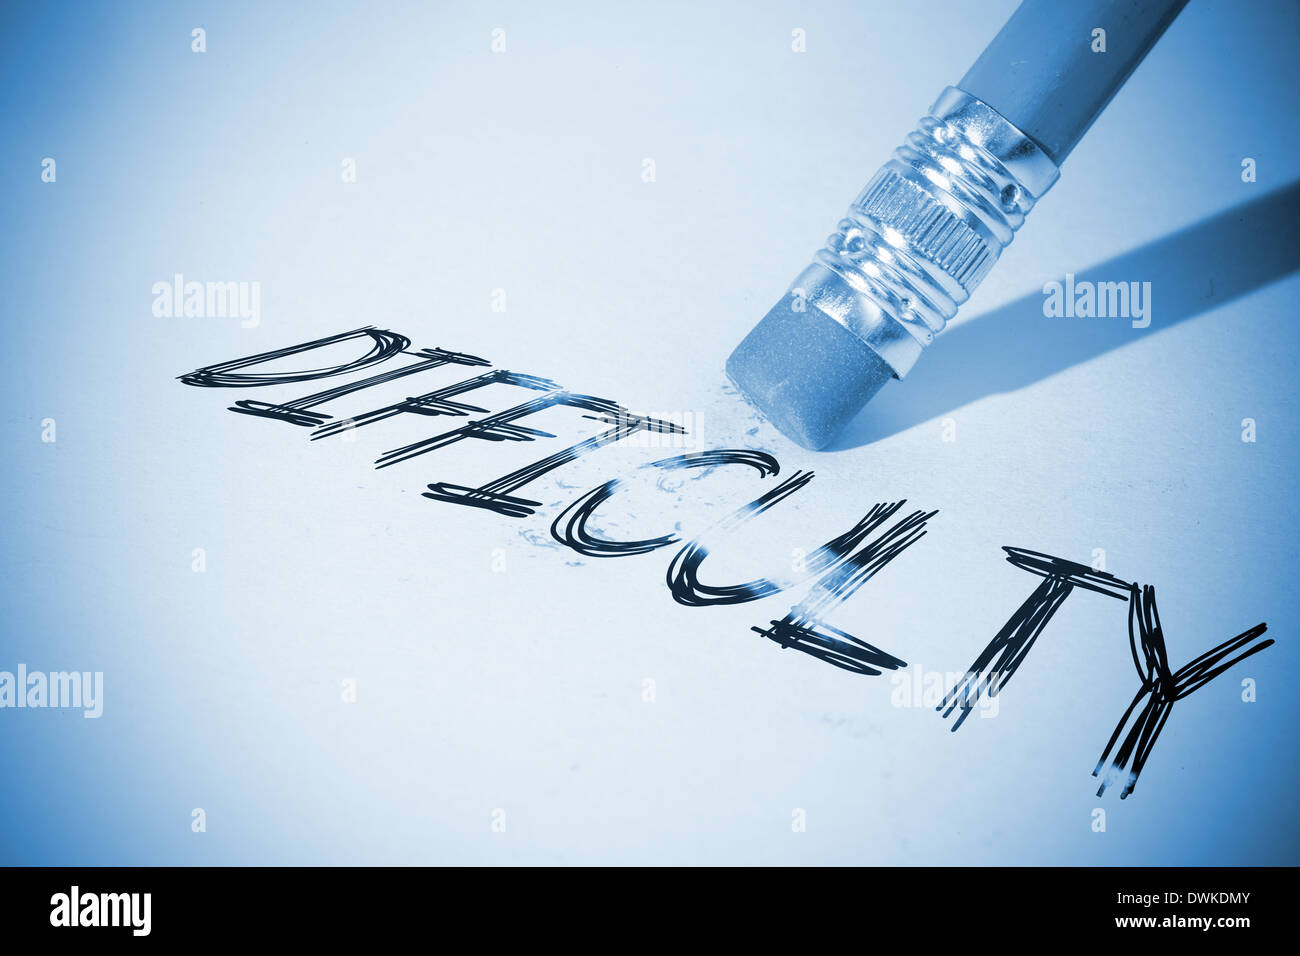 Pencil erasing the word Difficulty - Stock Image